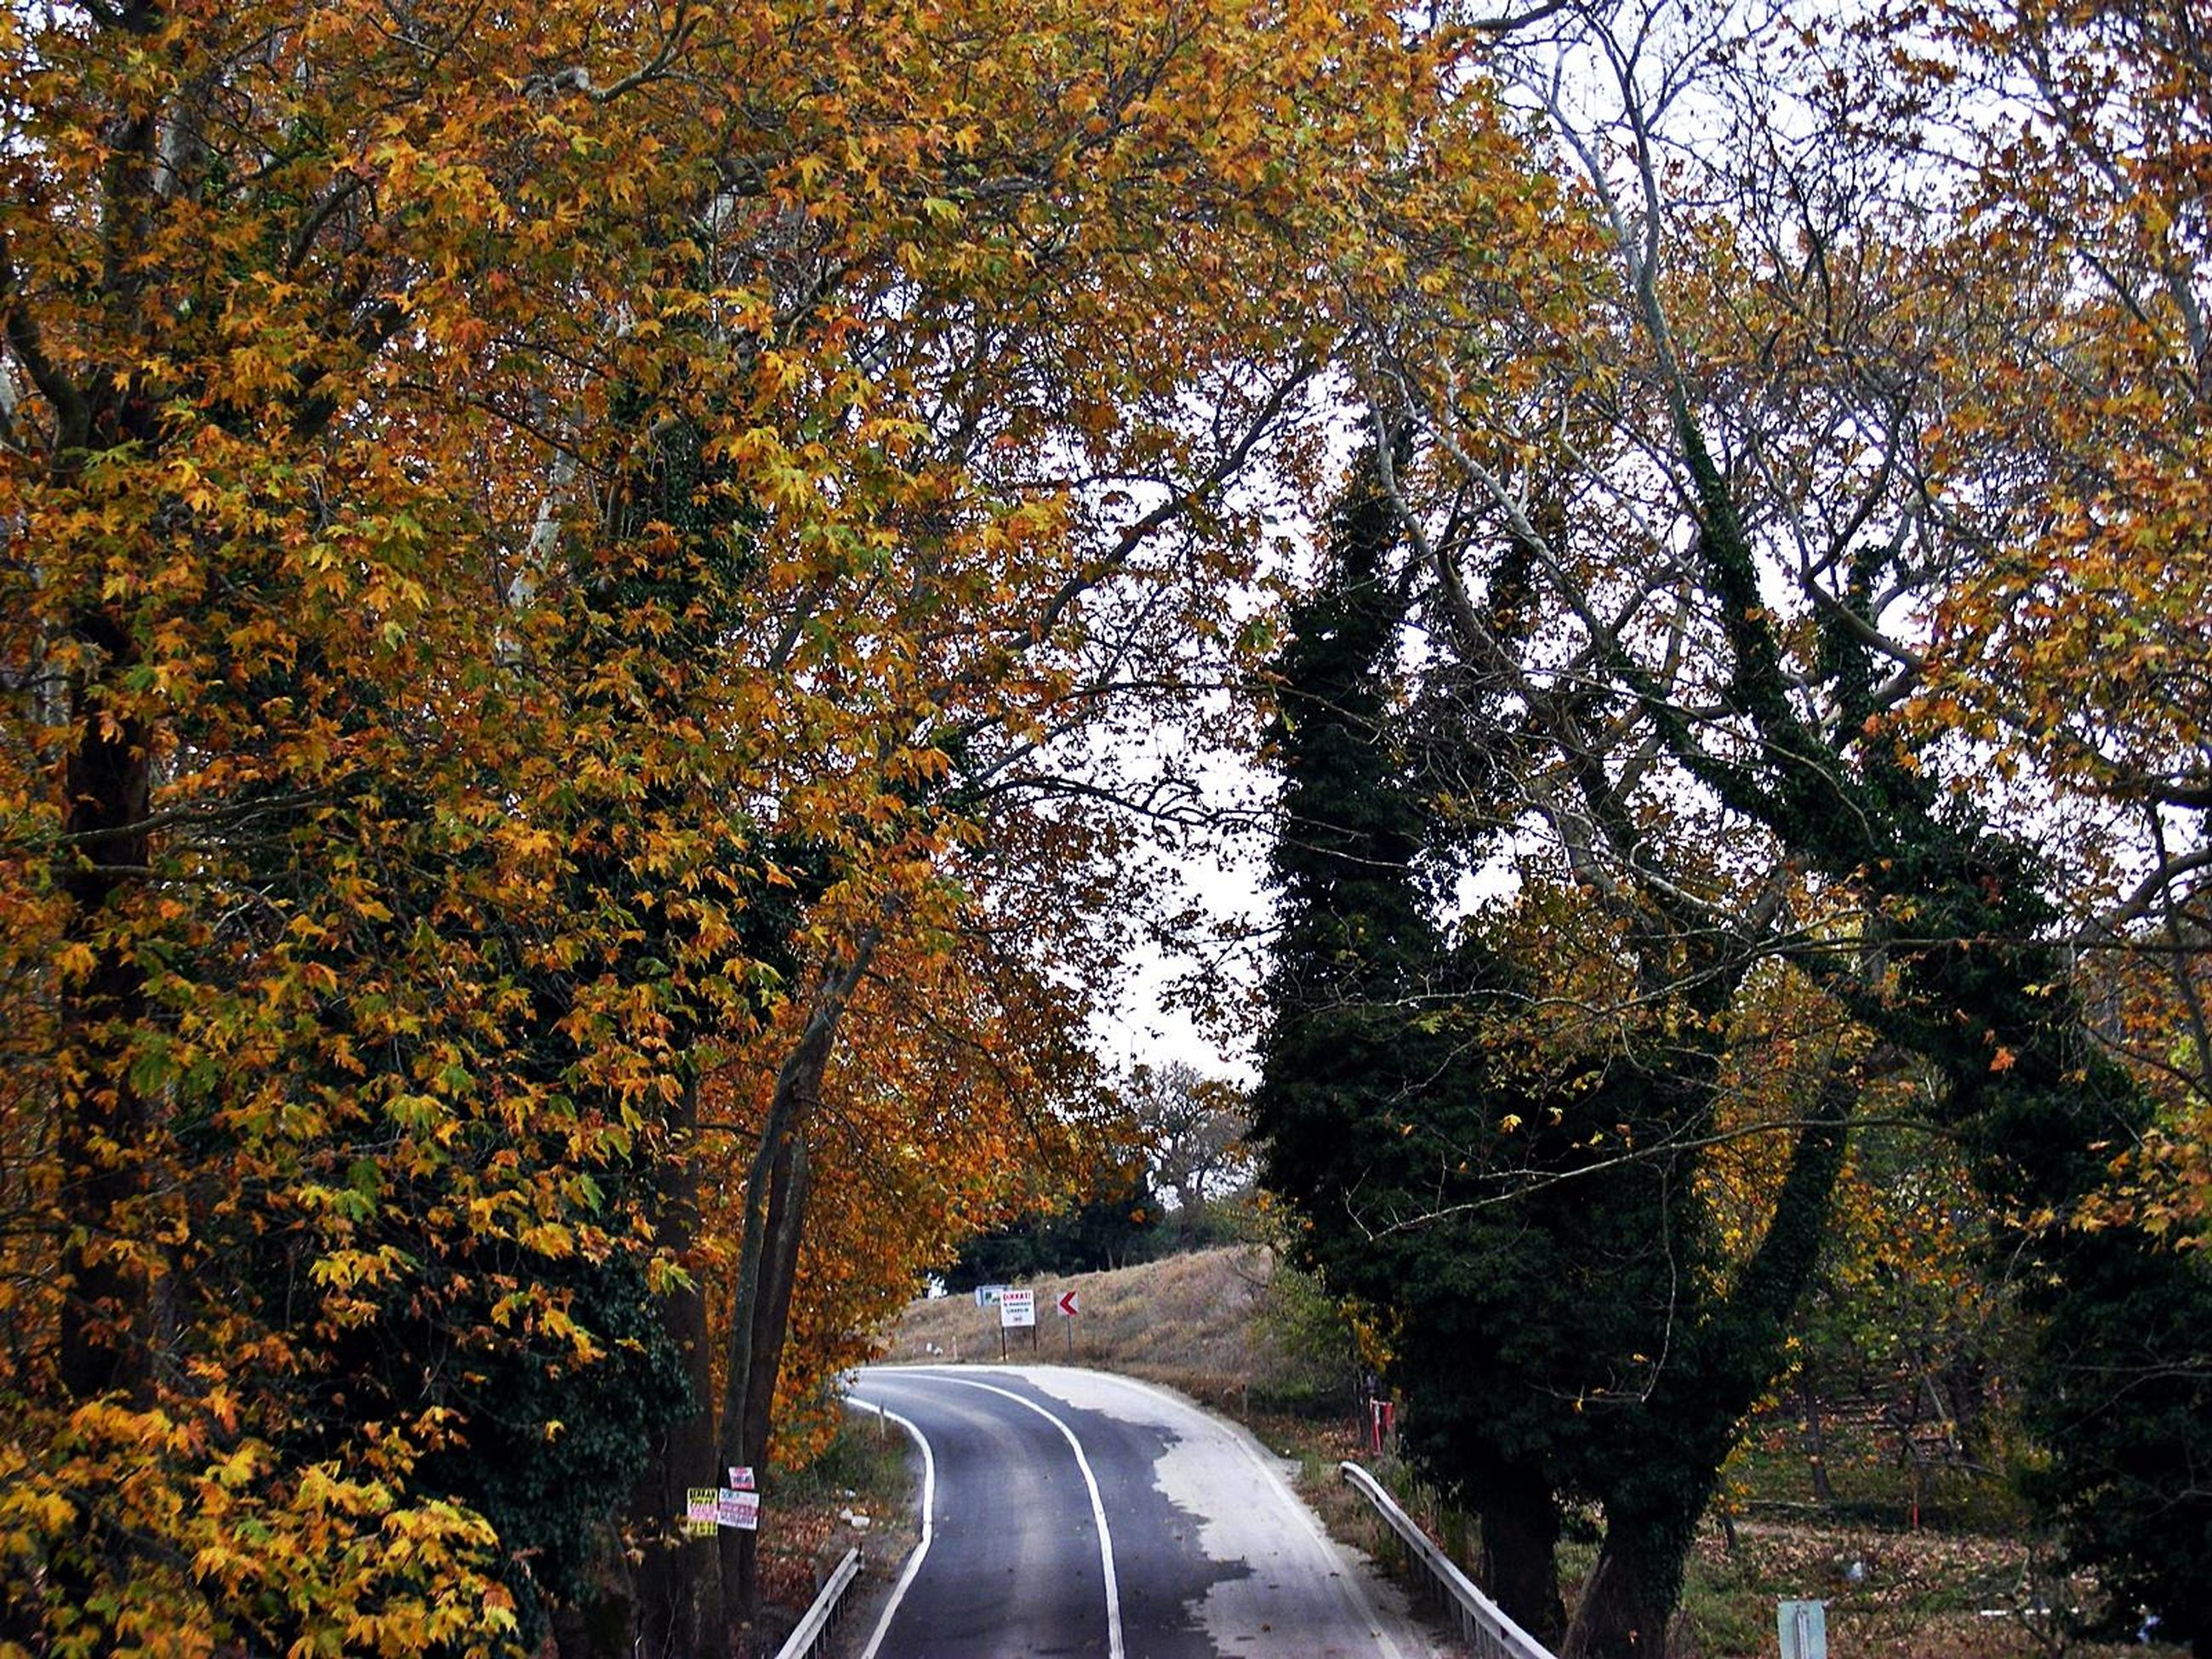 transportation, the way forward, tree, road, diminishing perspective, vanishing point, car, road marking, street, land vehicle, mode of transport, country road, empty road, nature, outdoors, day, growth, no people, autumn, branch